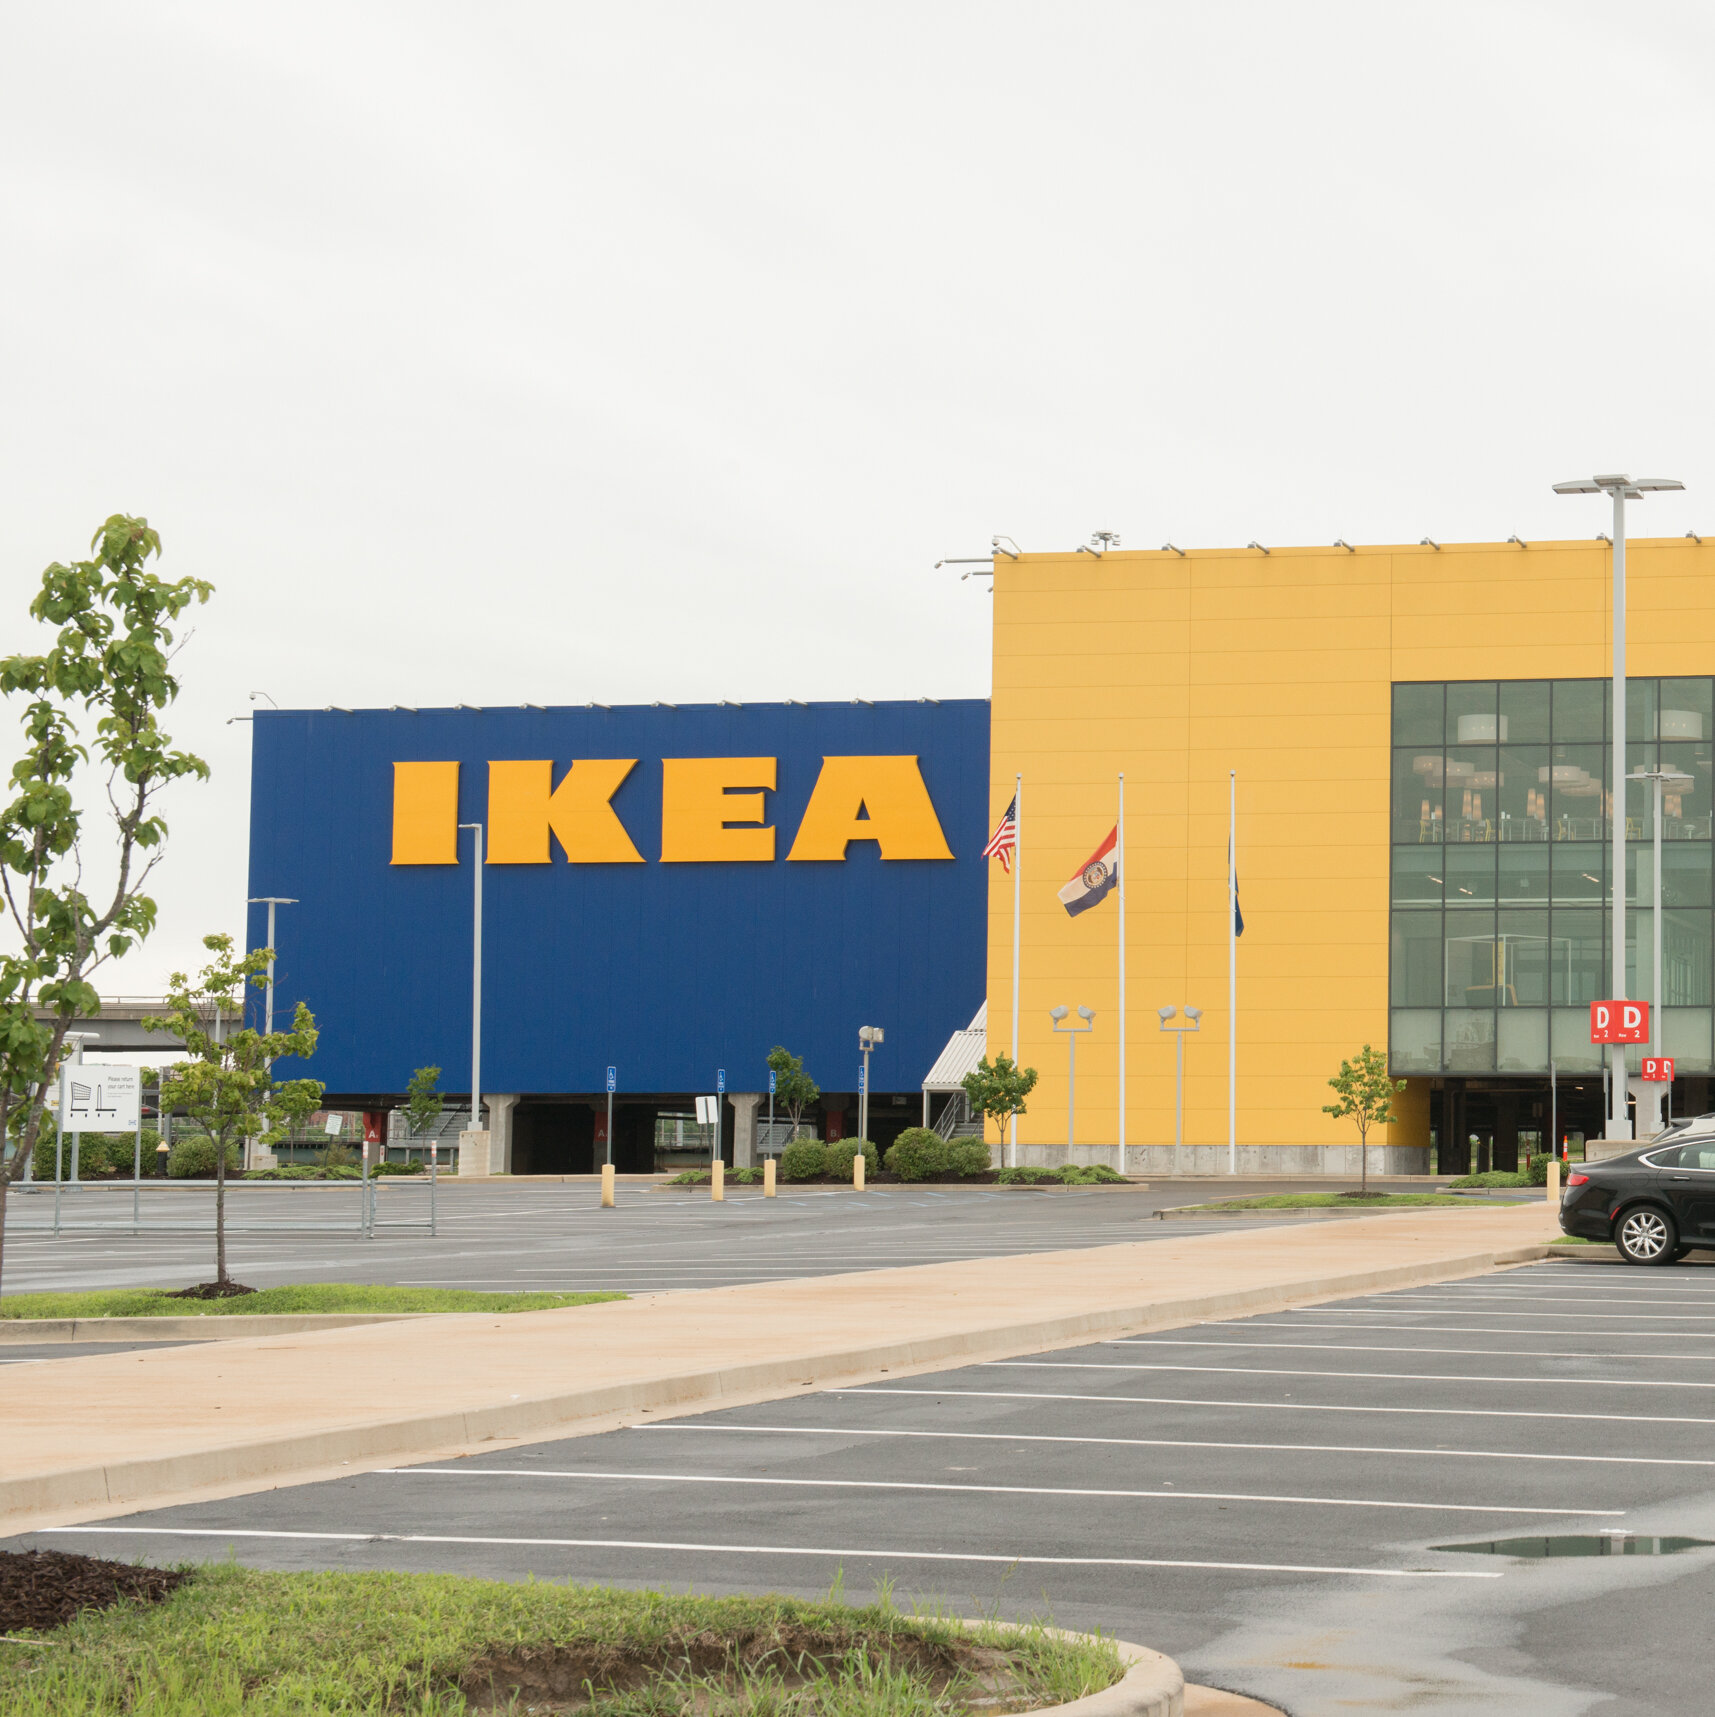 ikea will buy back some used furniture